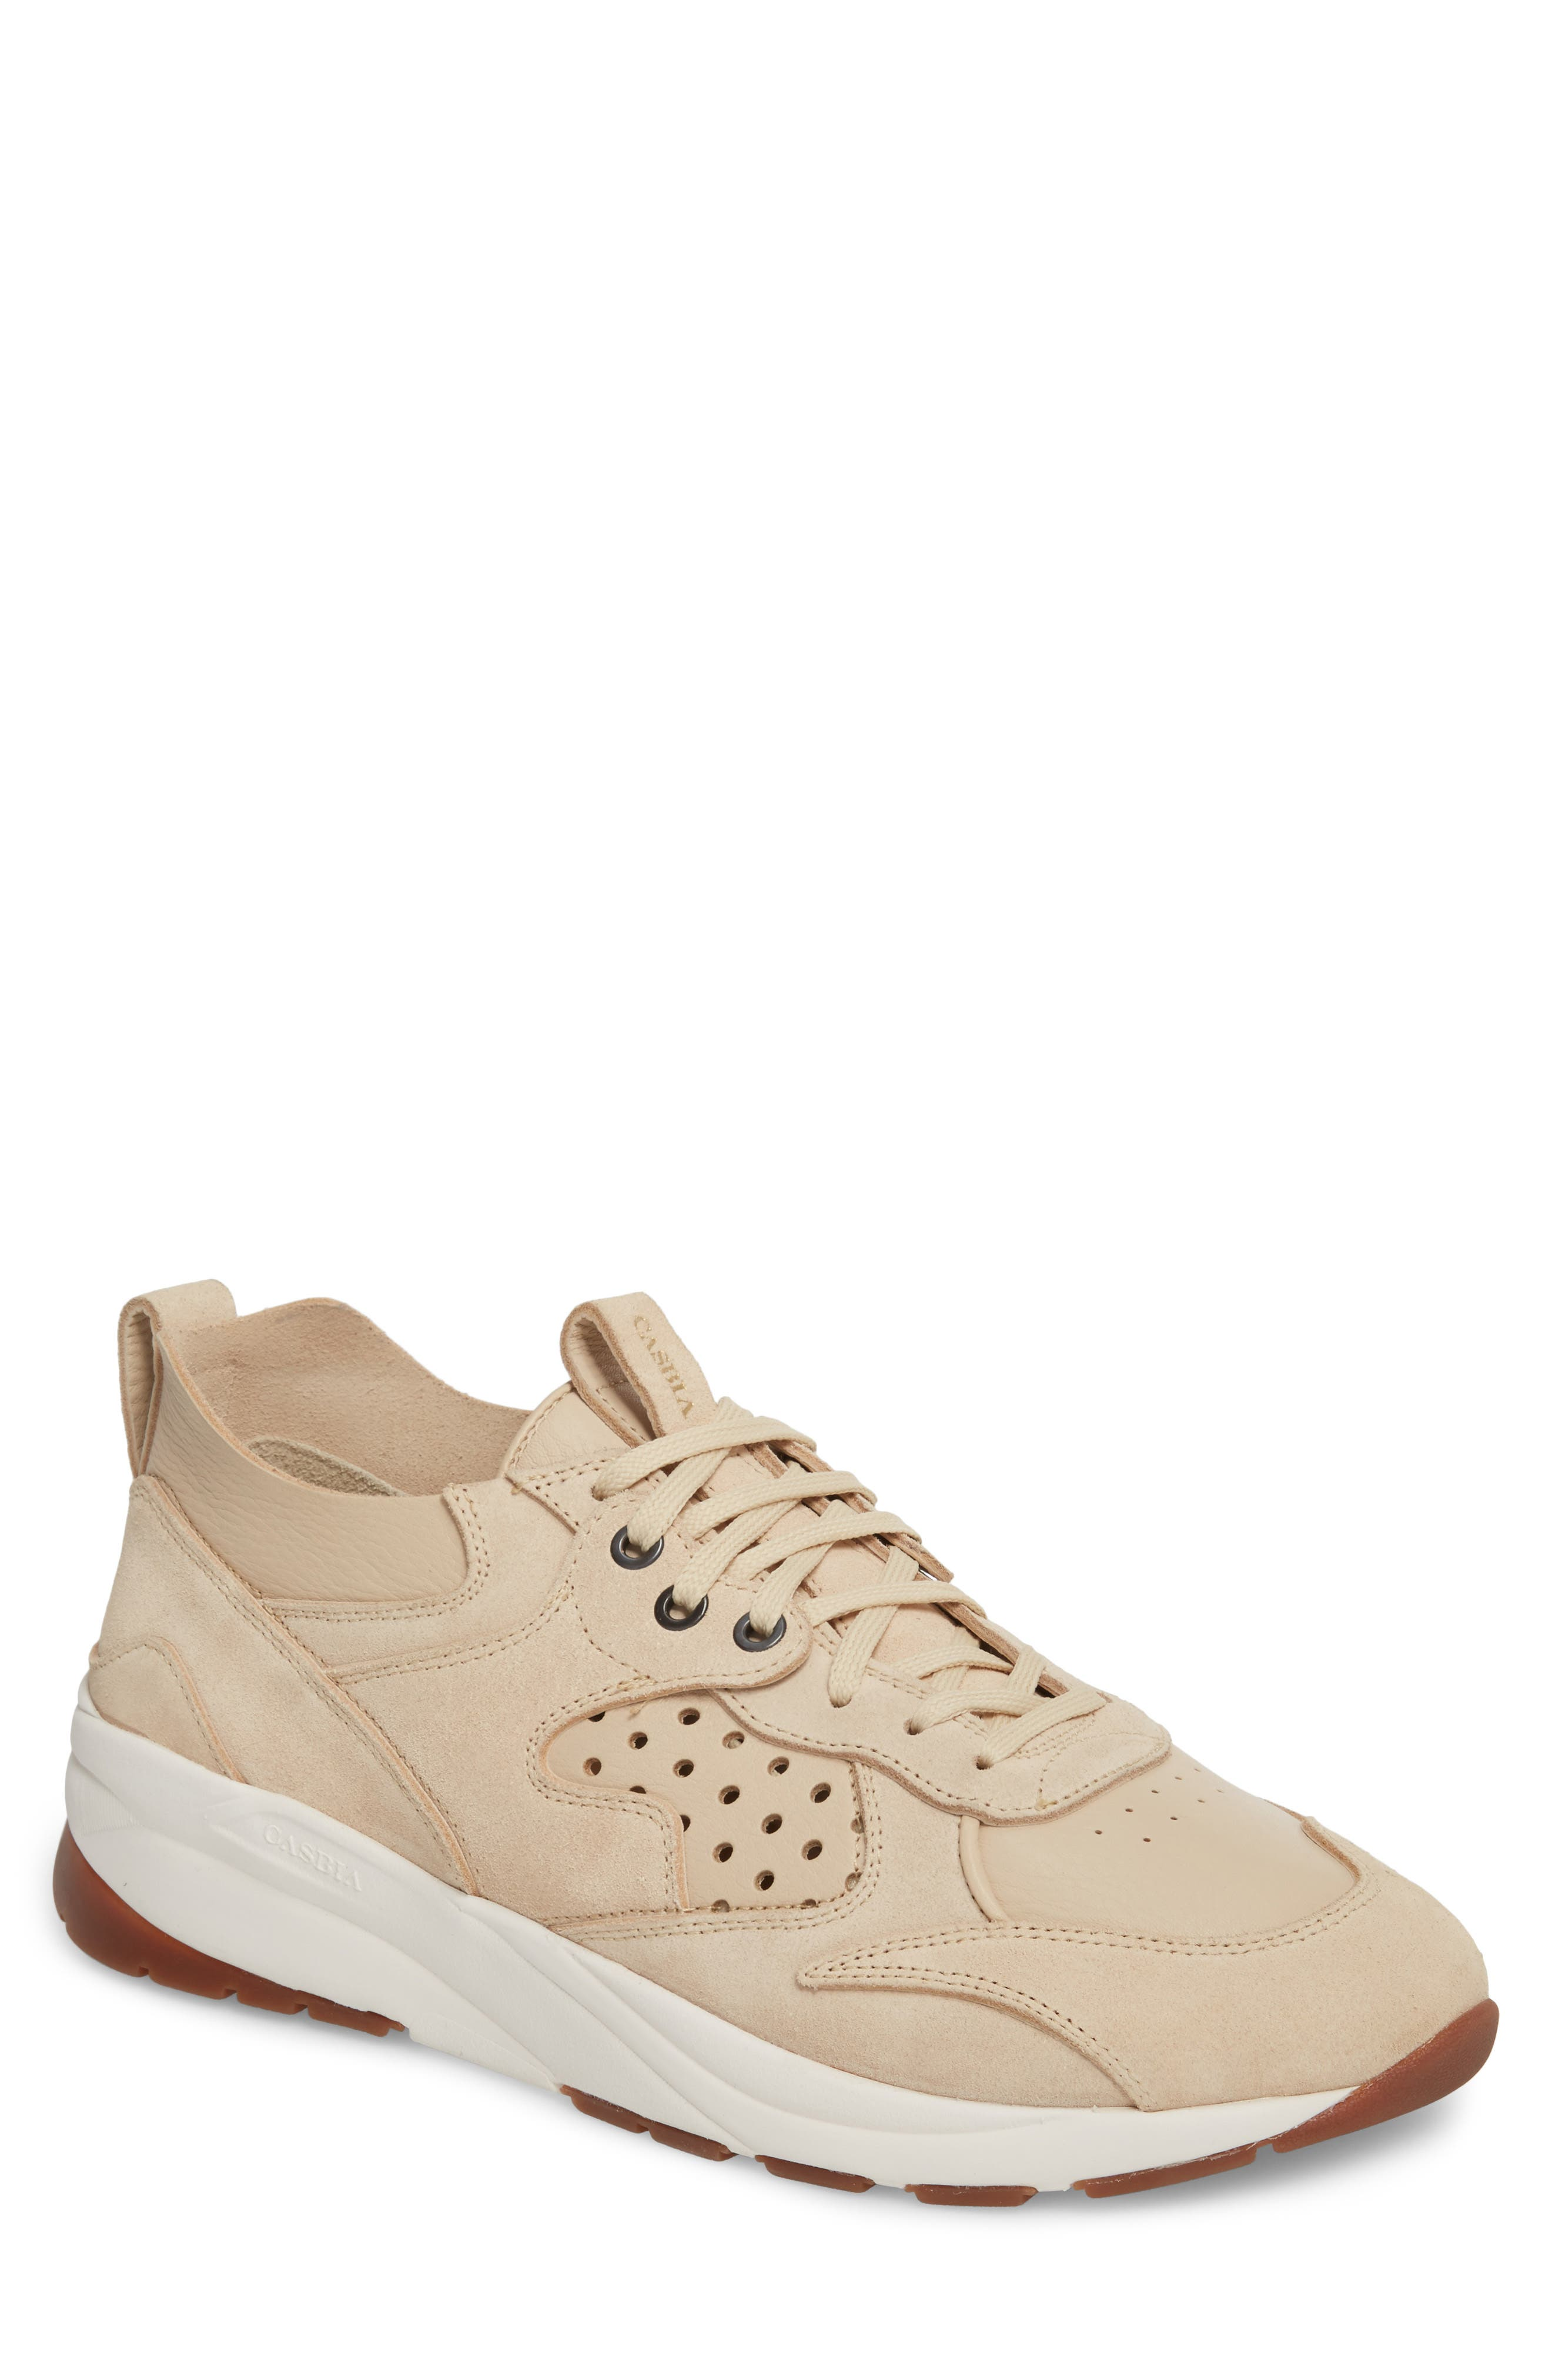 Champion Veloce Sneaker,                         Main,                         color, Beige Suede